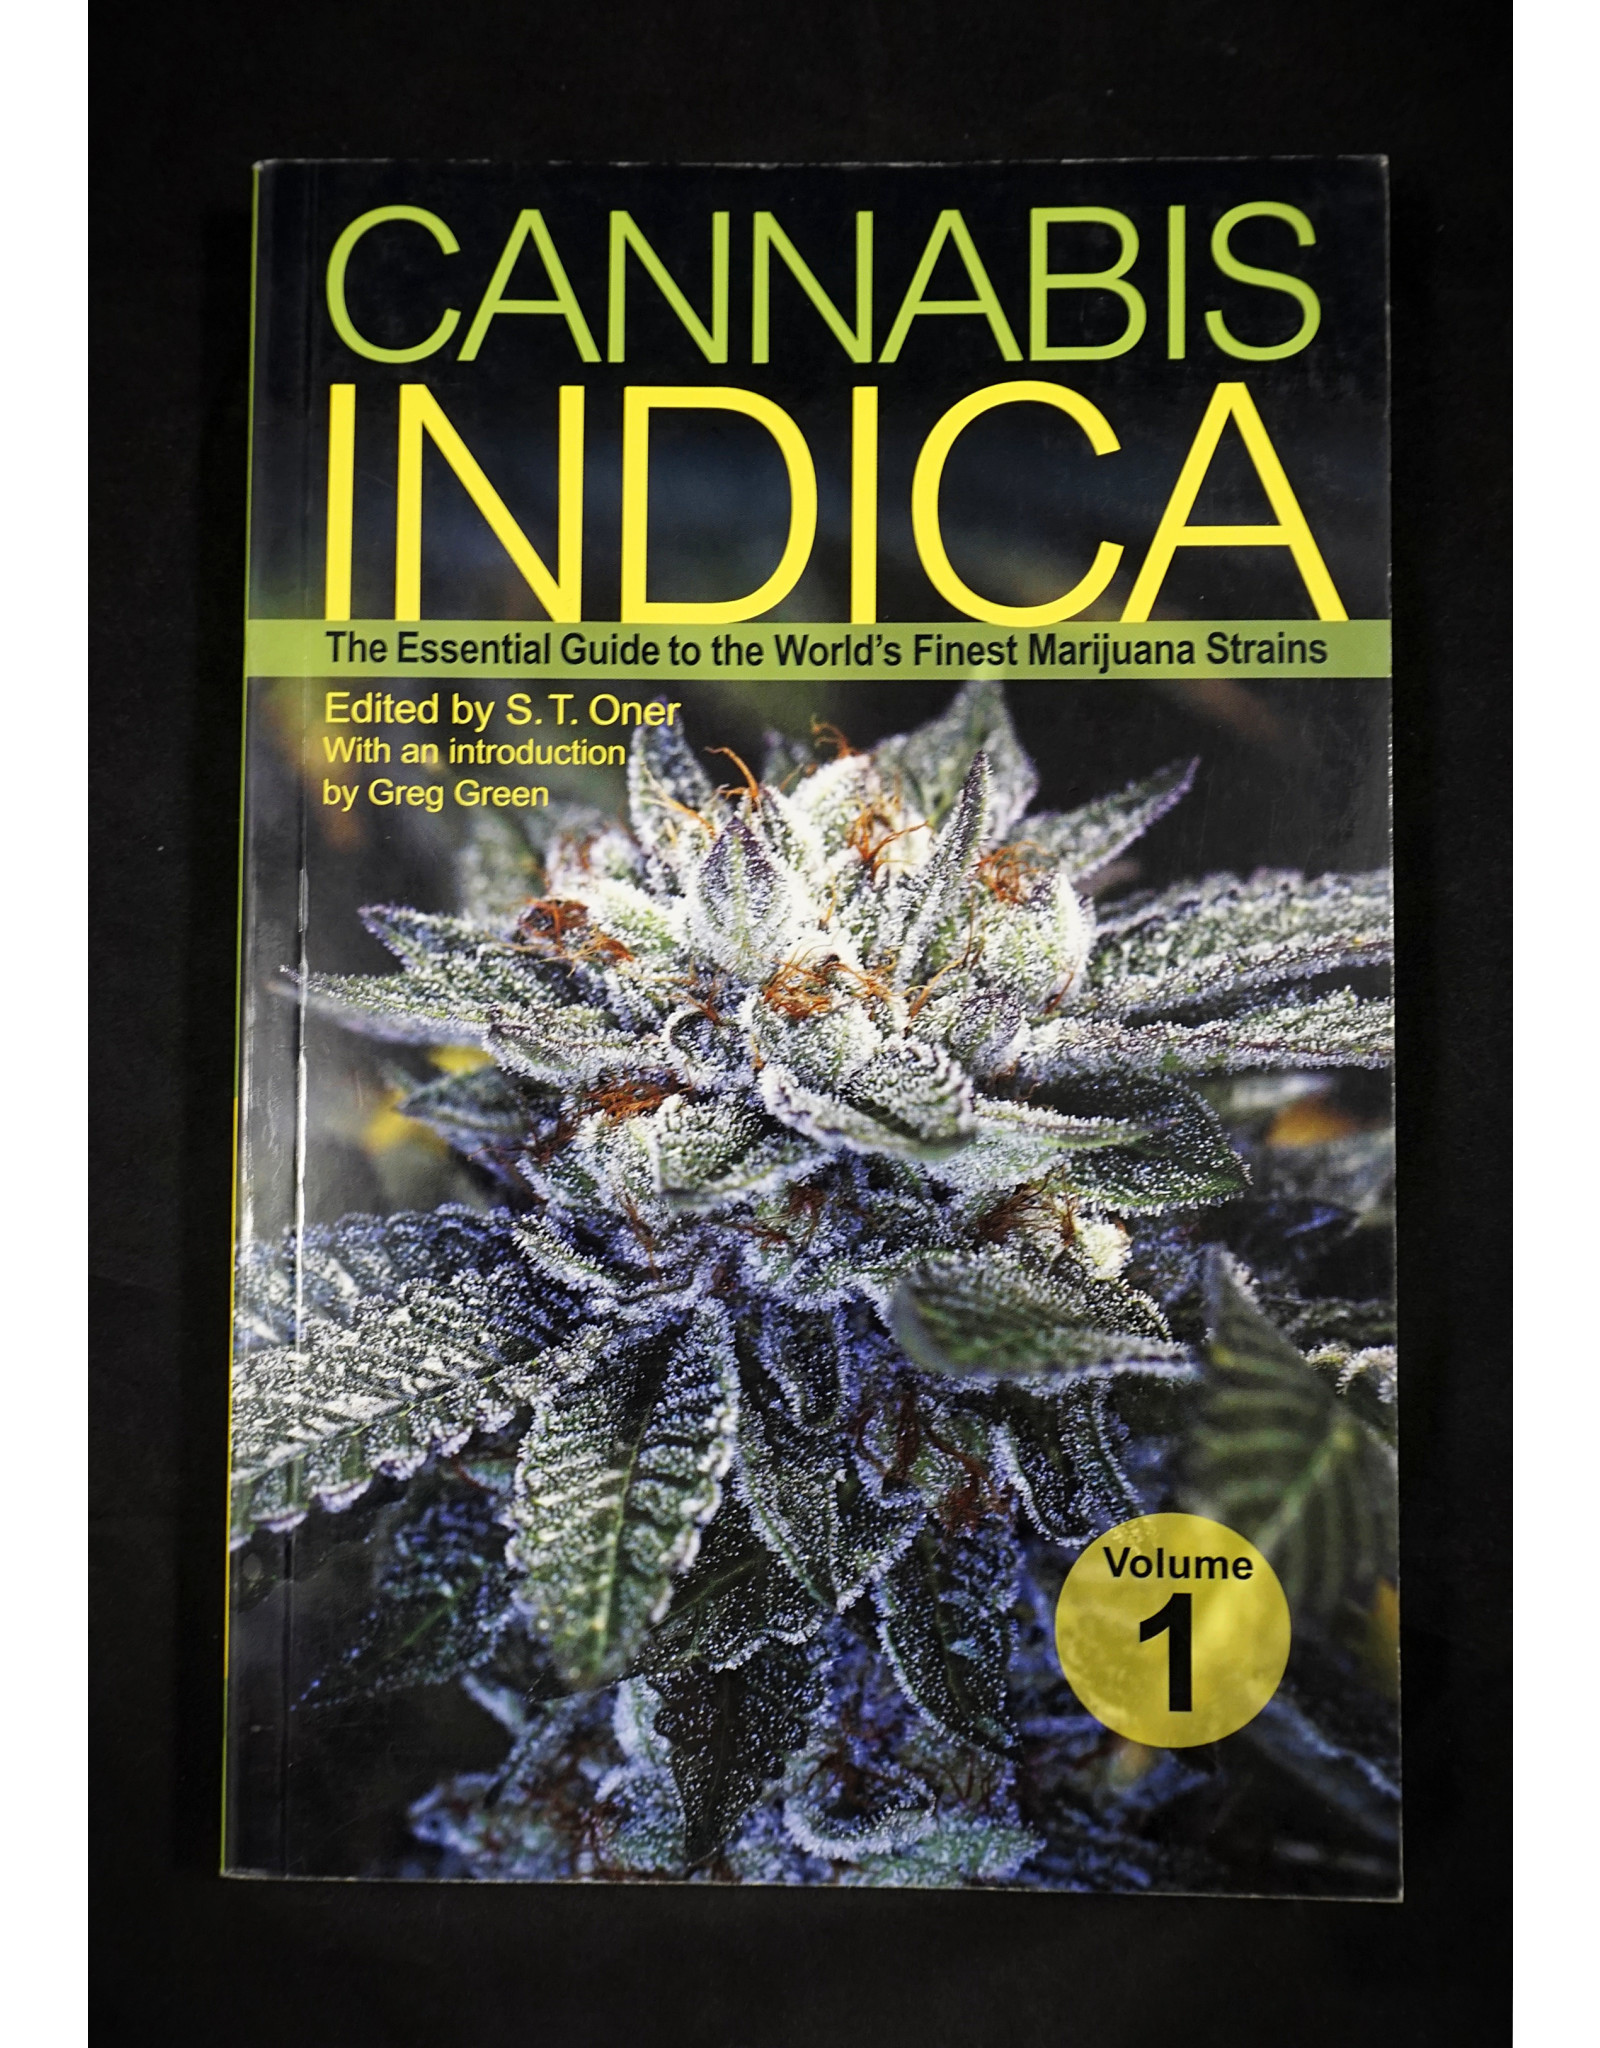 Cannabis Indica Volume 1